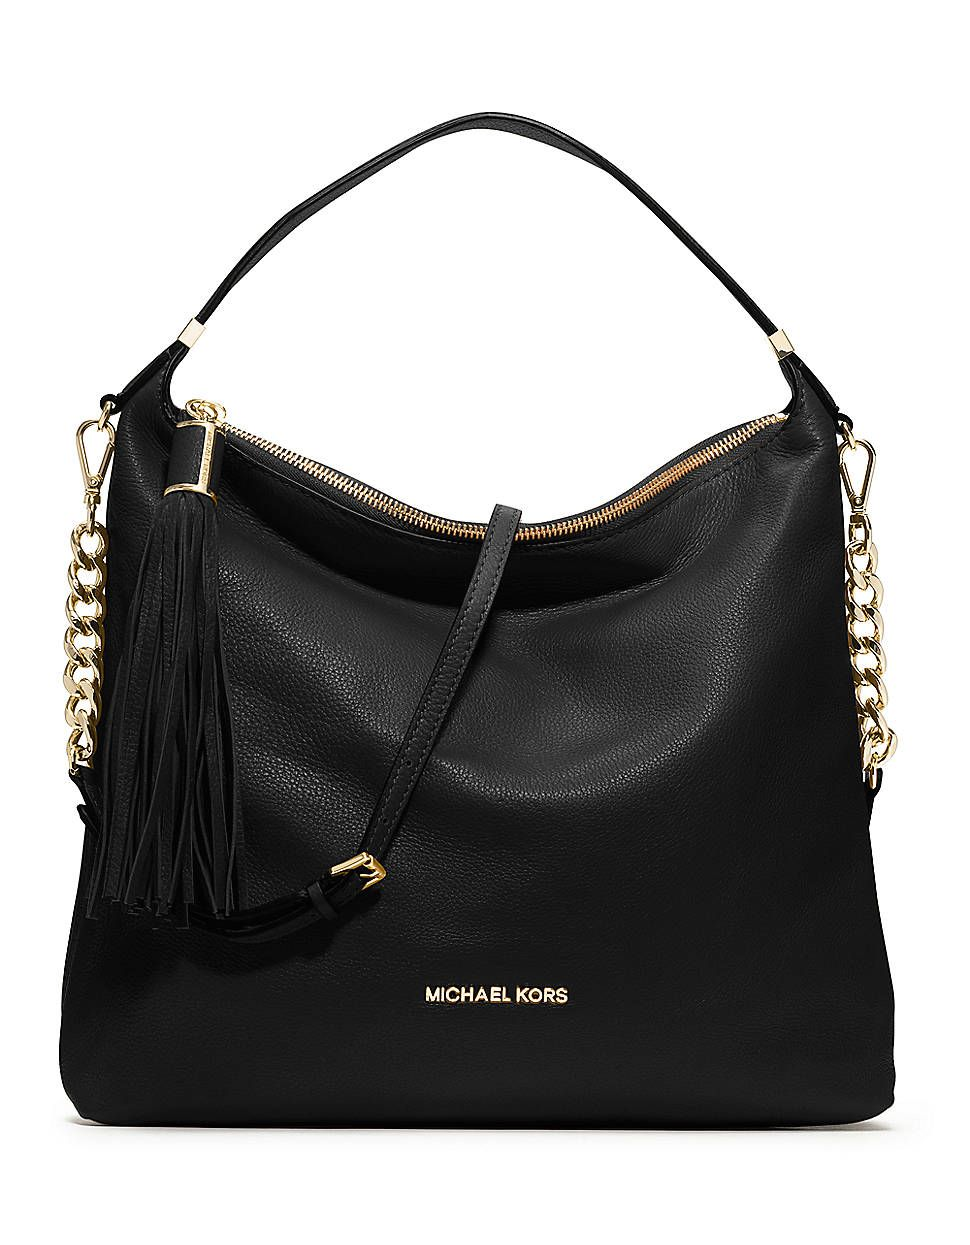 Michael kors bags in dubai - Michael Kors Bag Price In Dubai Mall